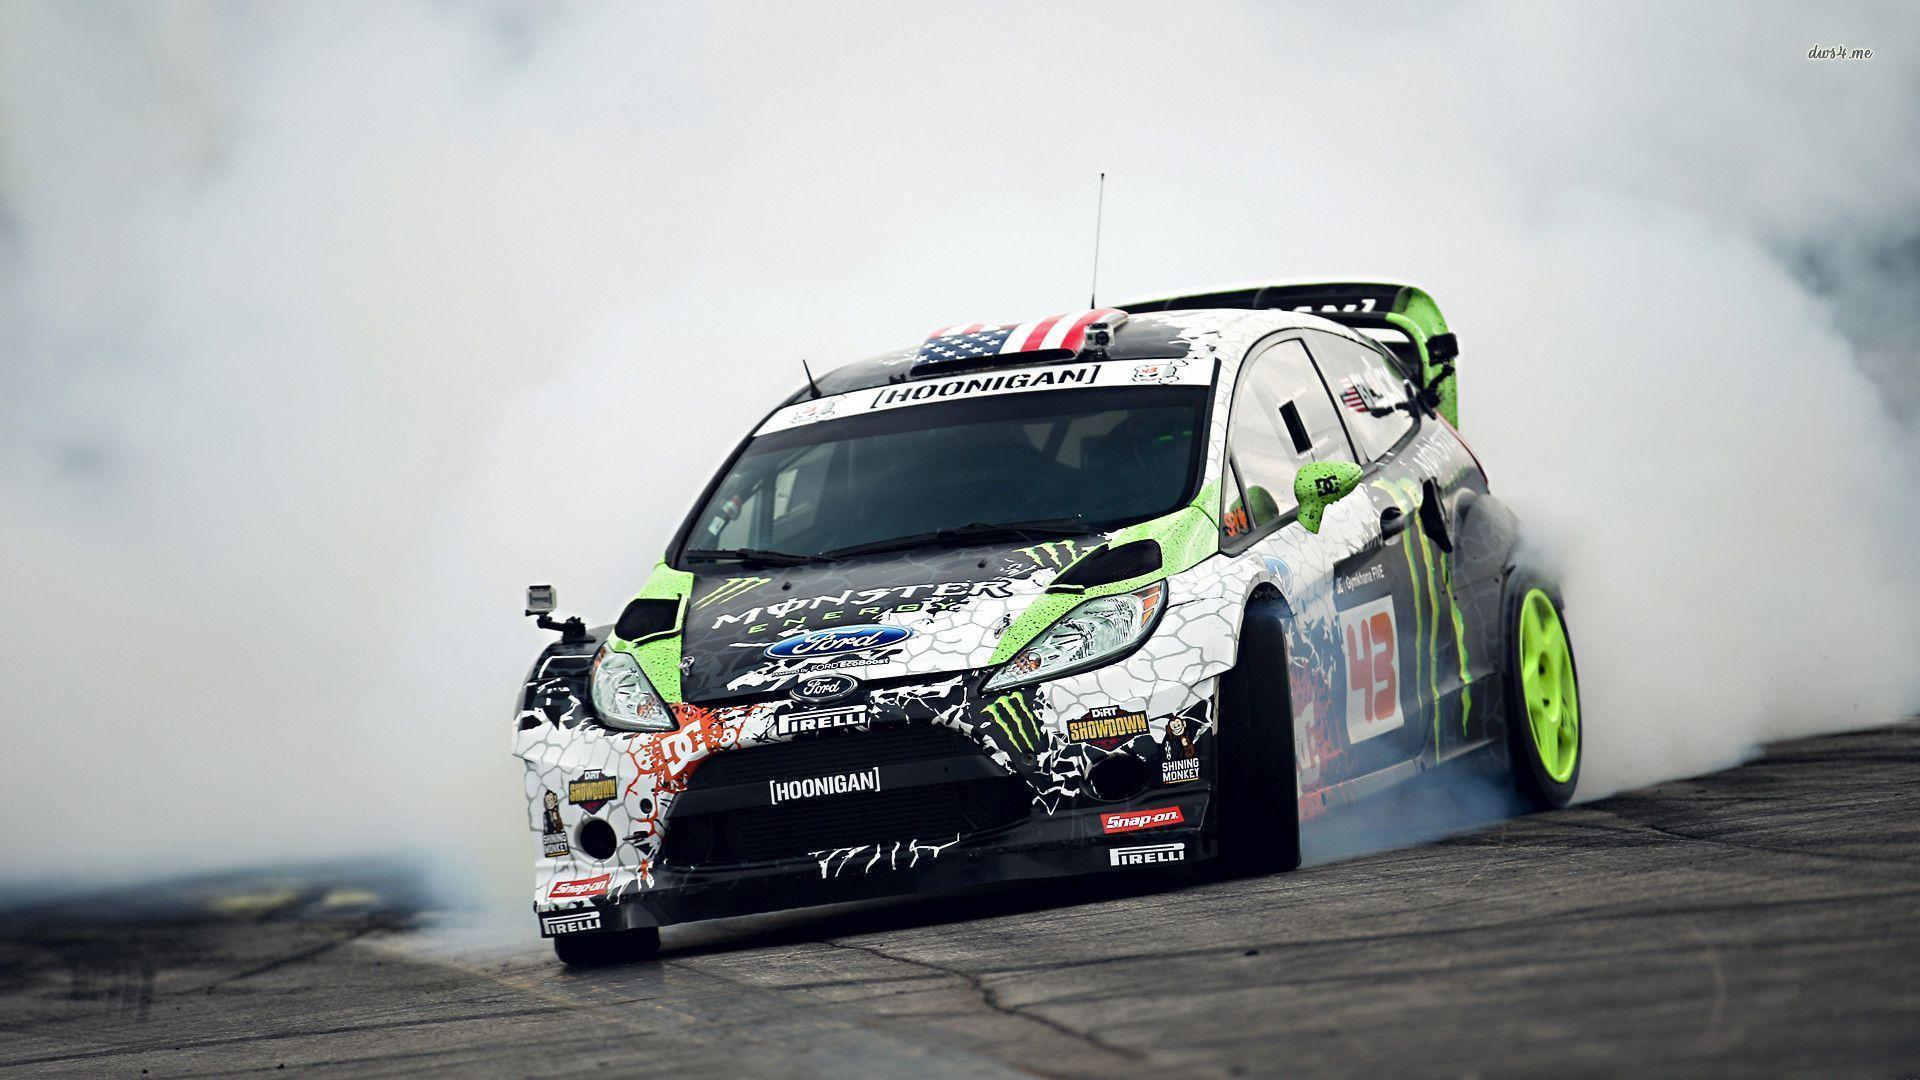 Wallpapers Ken Block 2015 Wallpaper Cave